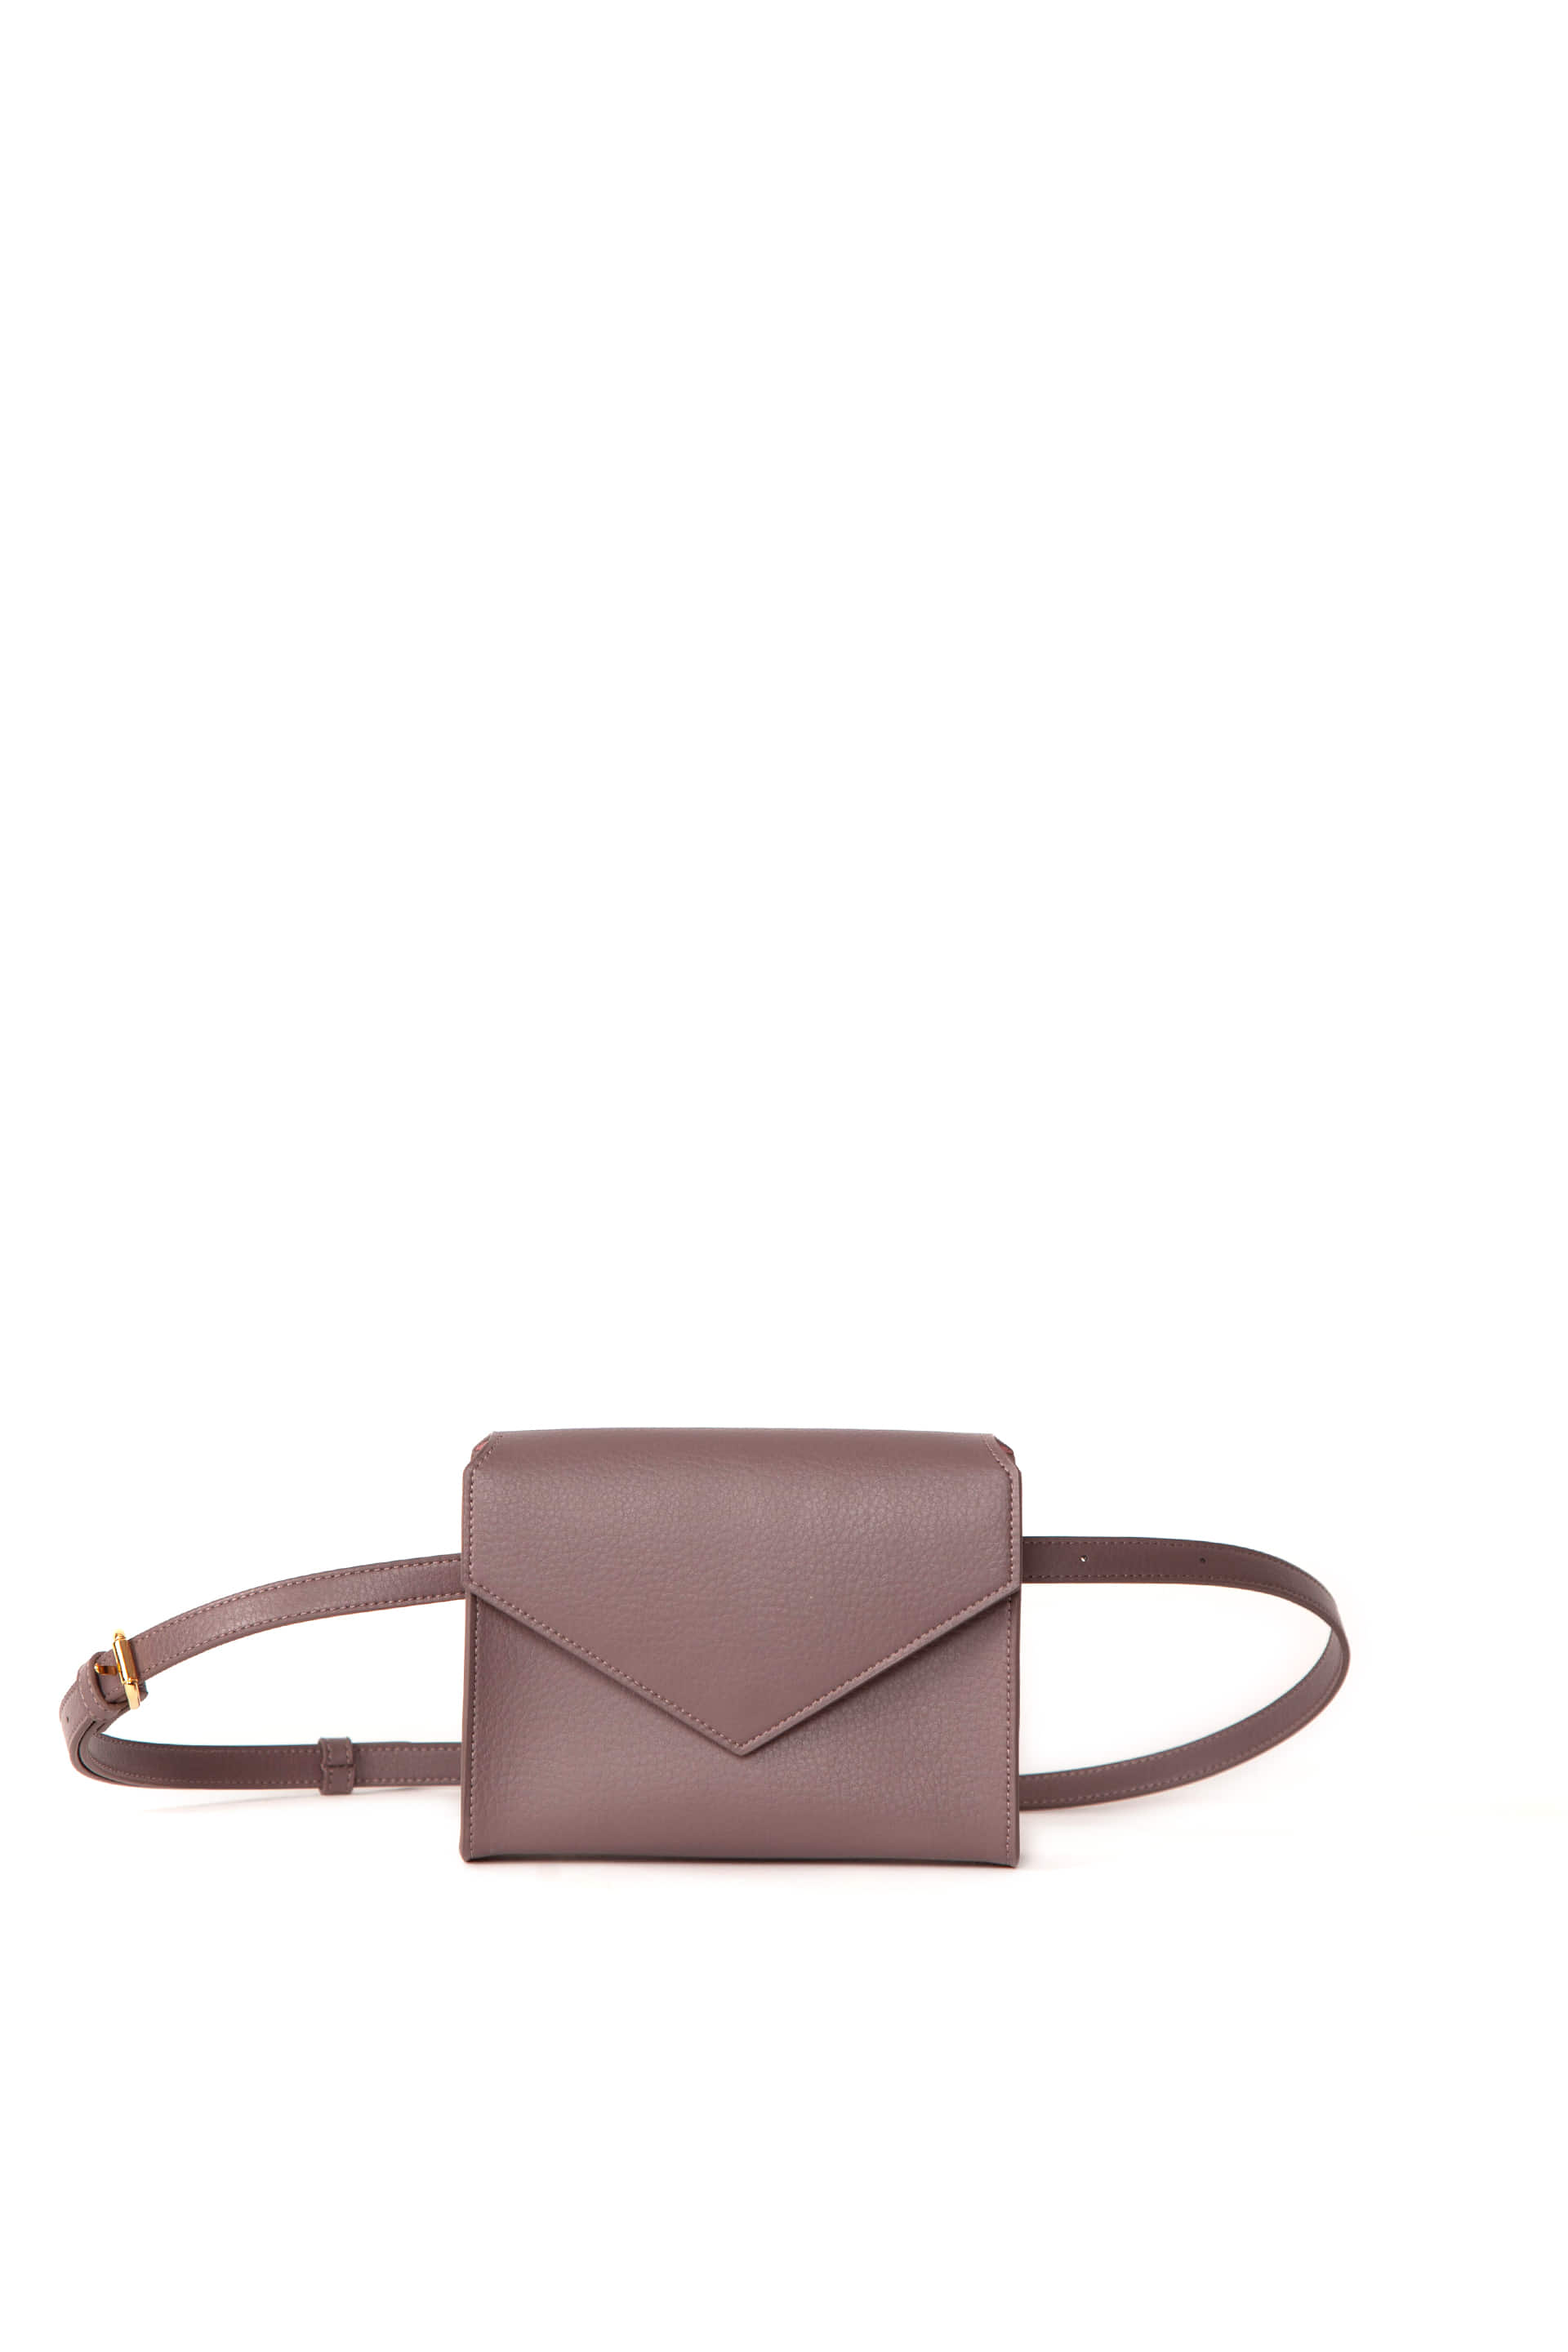 4-way BELT BAG 19 Mulberry Purple